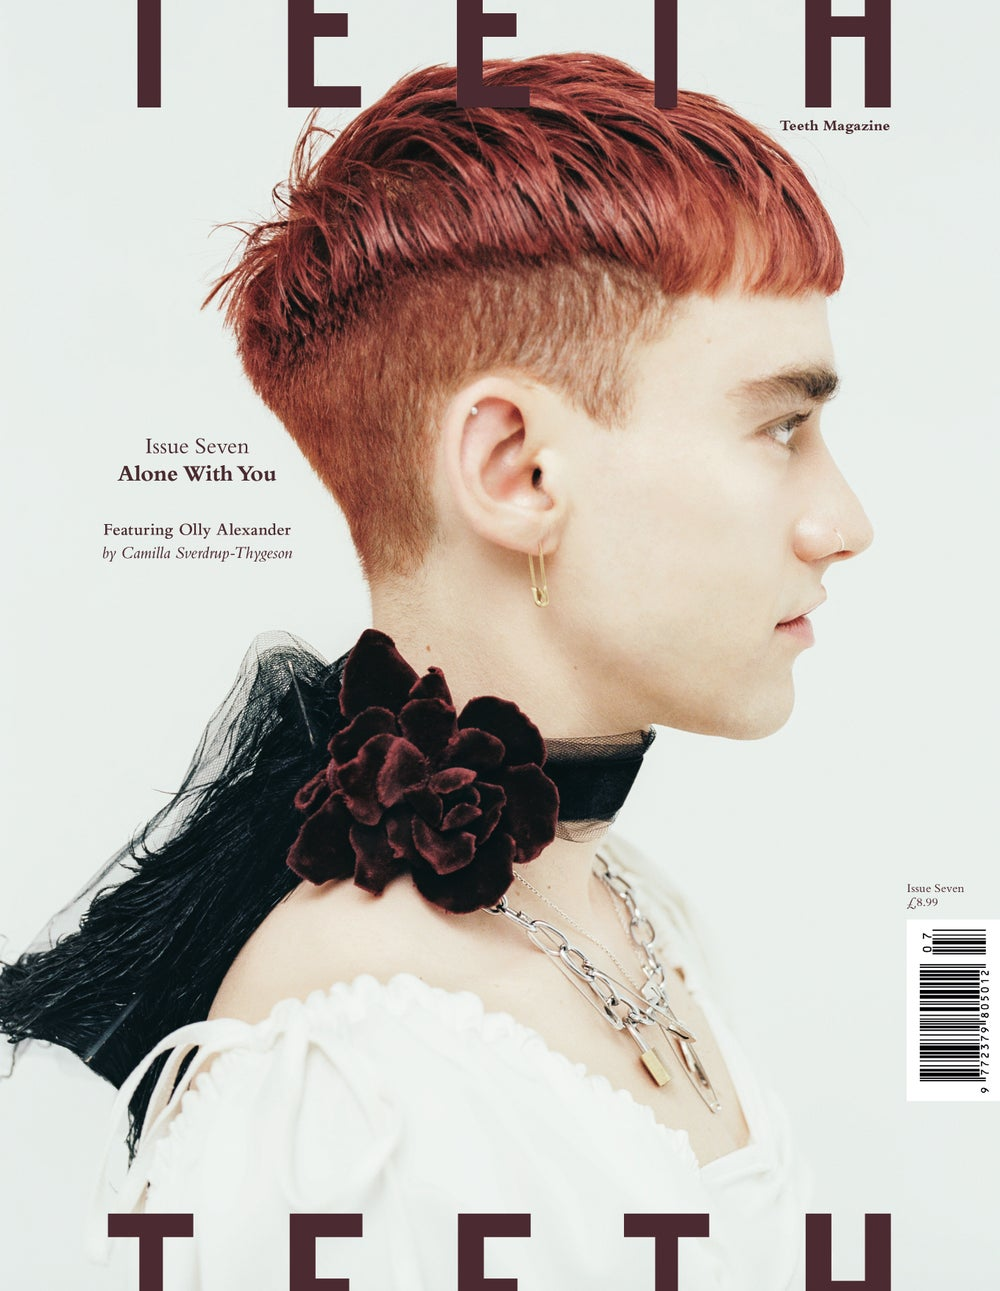 Image of Alone With You Issue (Olly Alexander Cover)